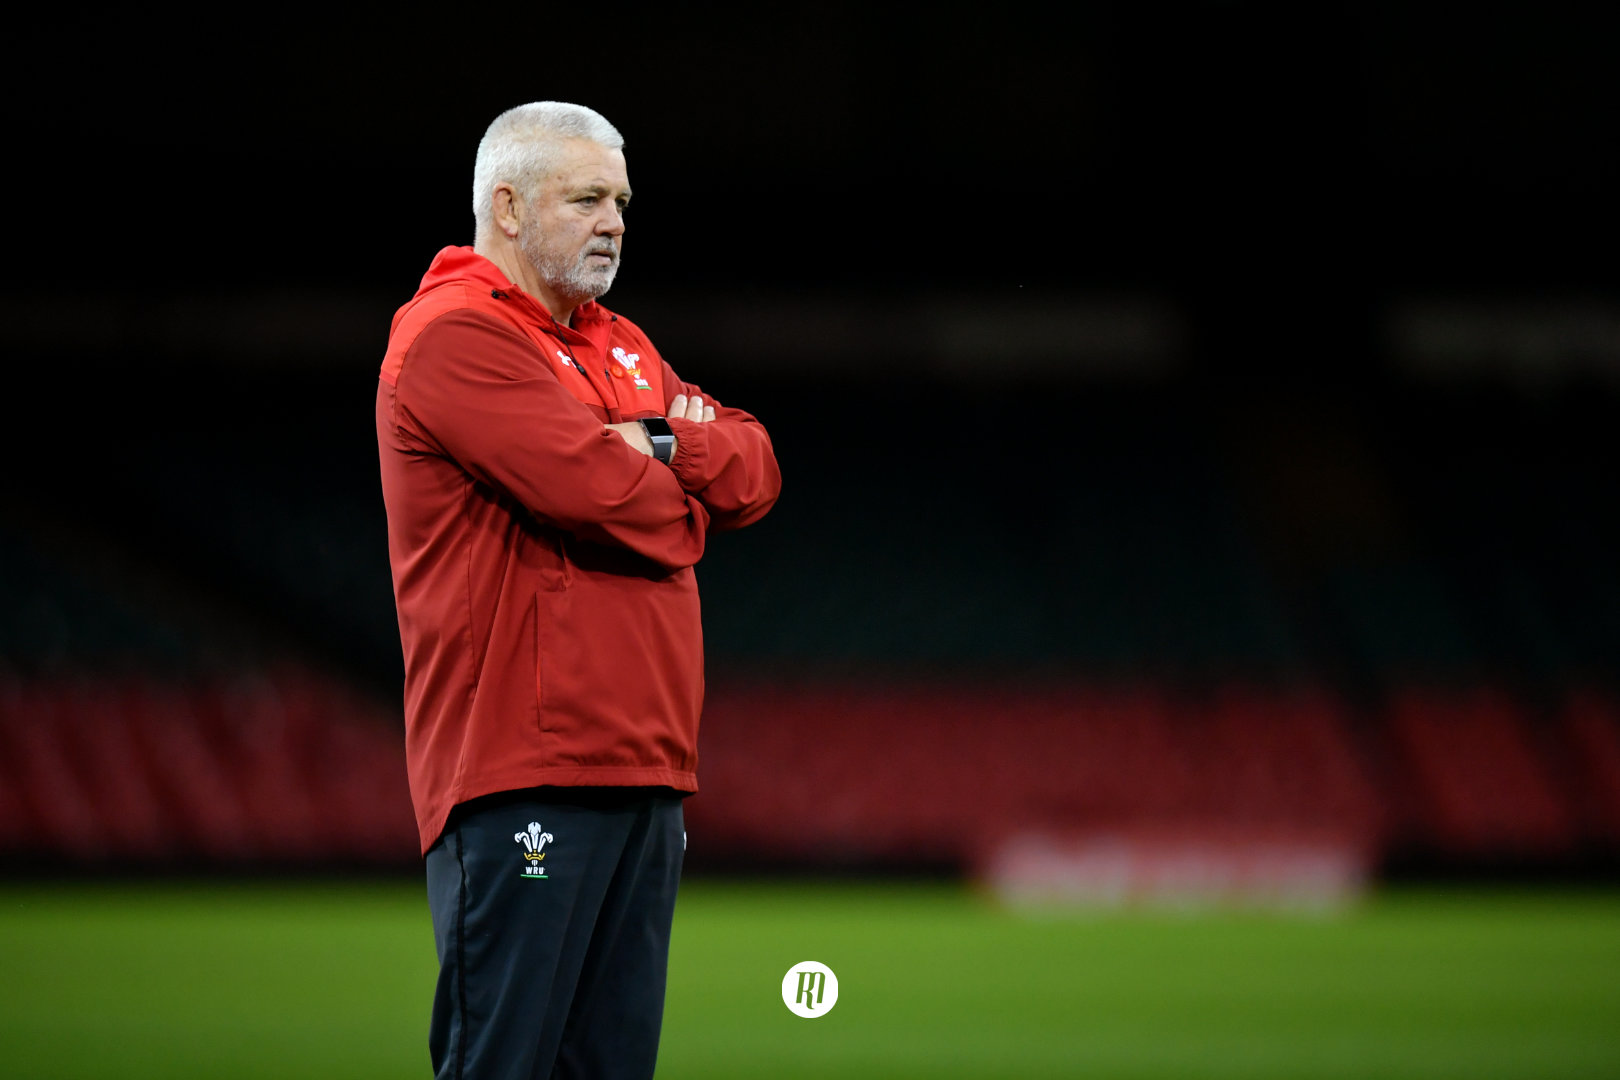 The Winner Takes It All: Warren Gatland sets iron sights on Wales swansong